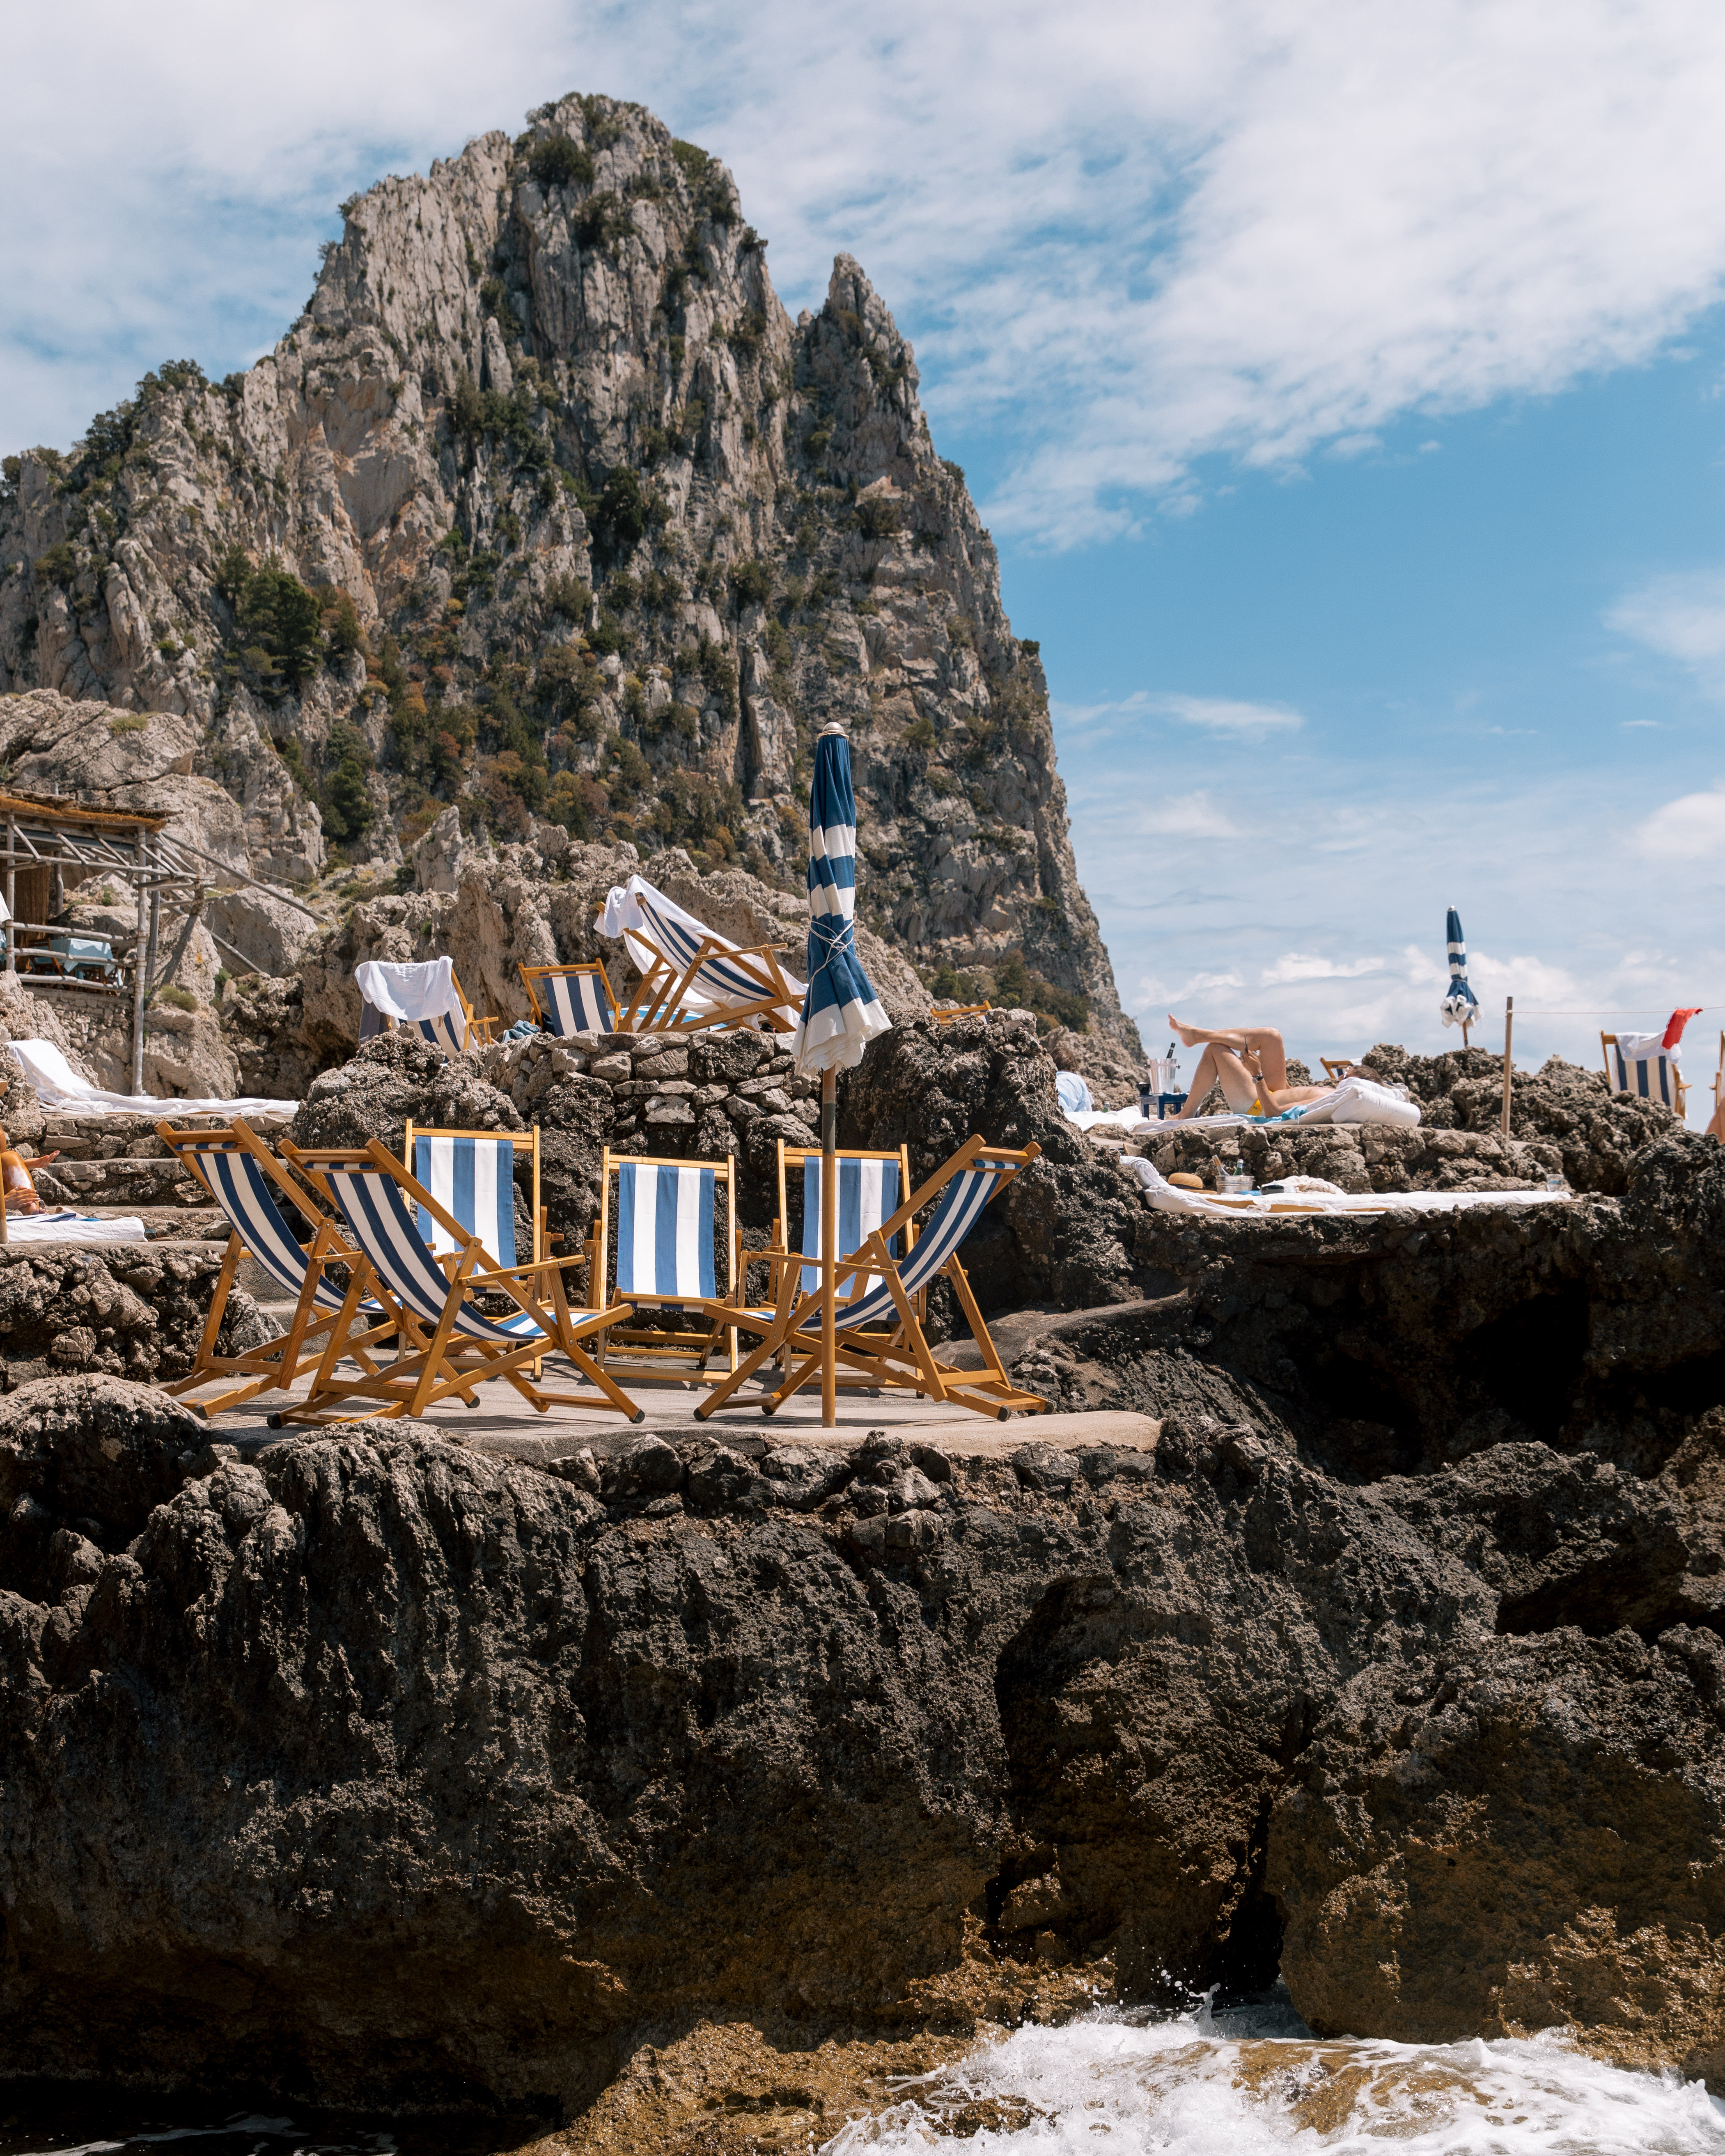 Style Blogger Stephanie Hill from The Style Bungalow speaks about the Amalfi Coast Guide in Capri